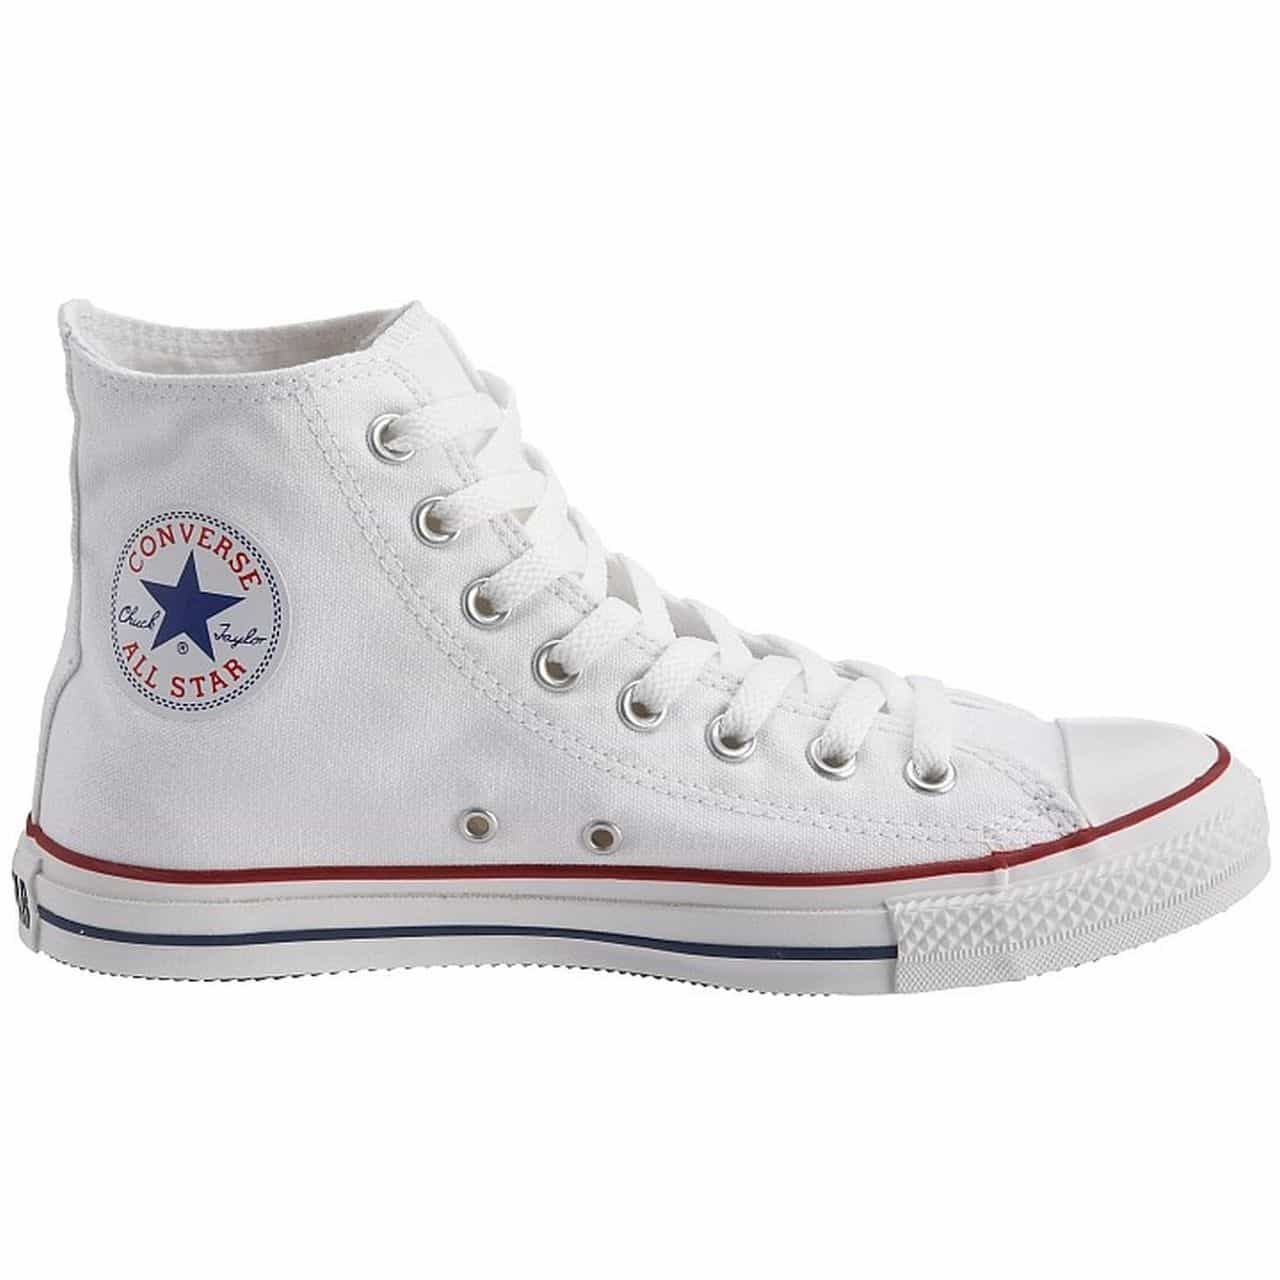 TENISI CONVERSE ALL STAR HI - M7650C 1